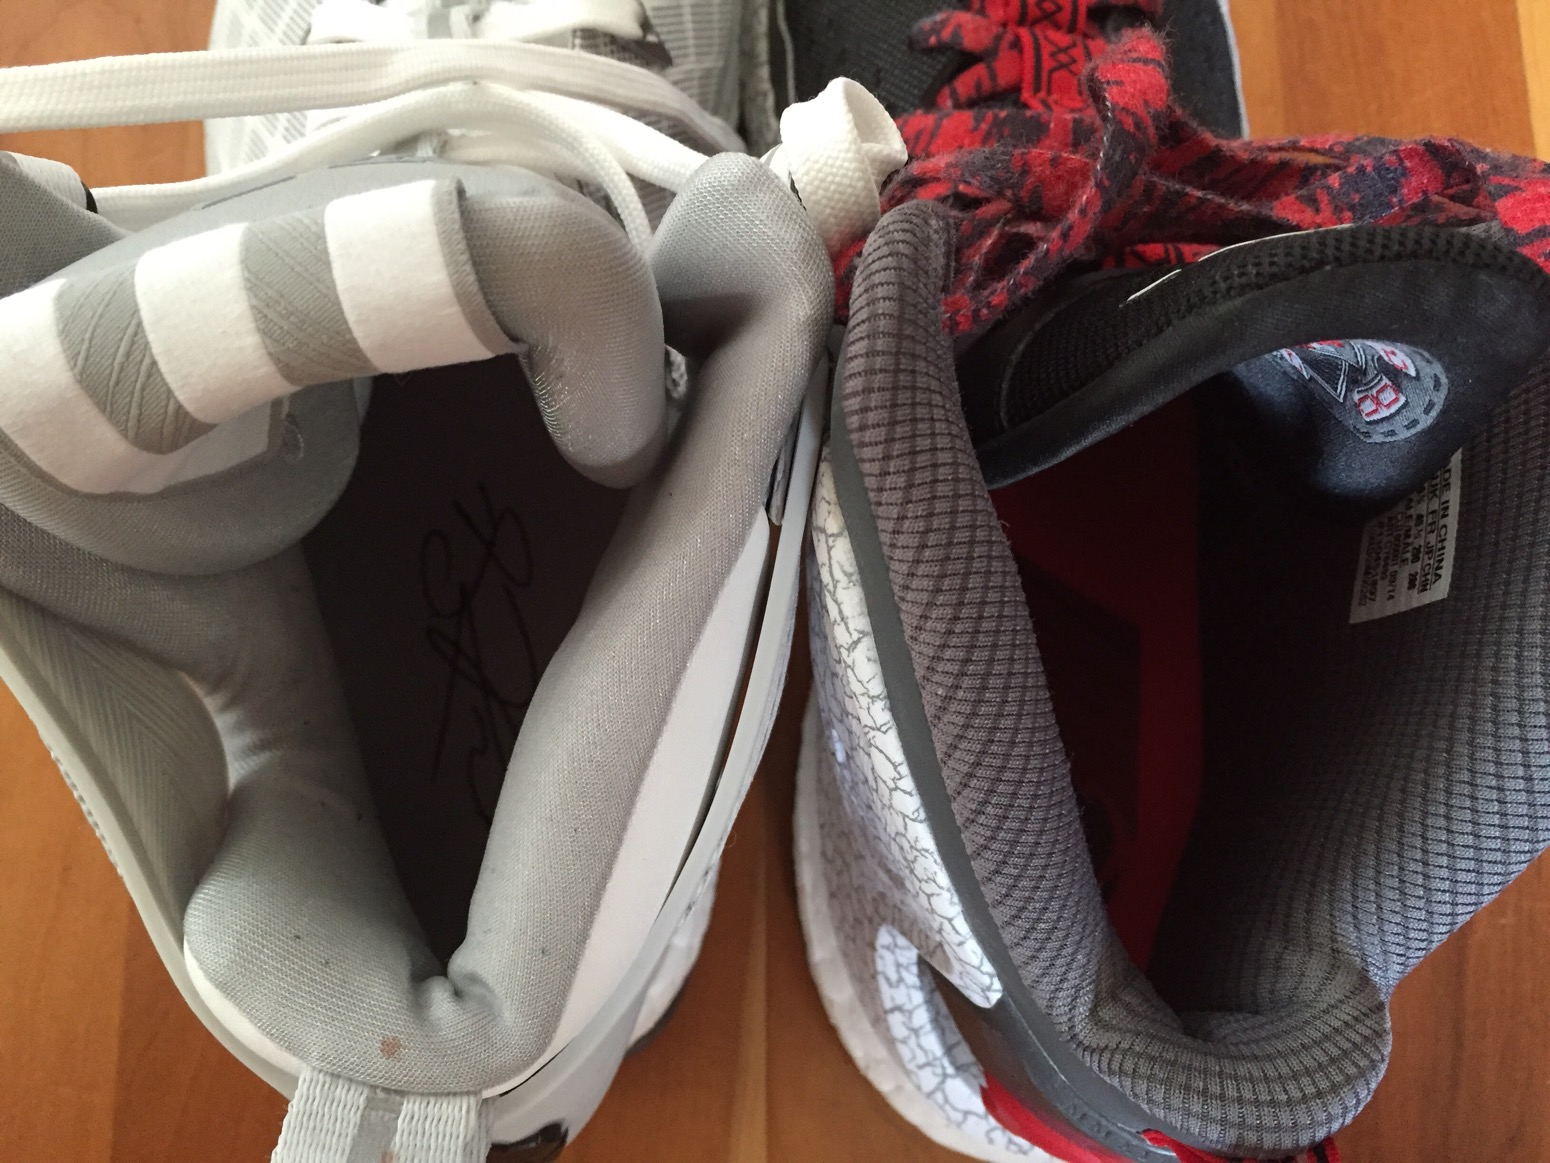 ffe6c445e0505c Adidas DRose D Rose 6 Boost Performance Review and Comparison ...